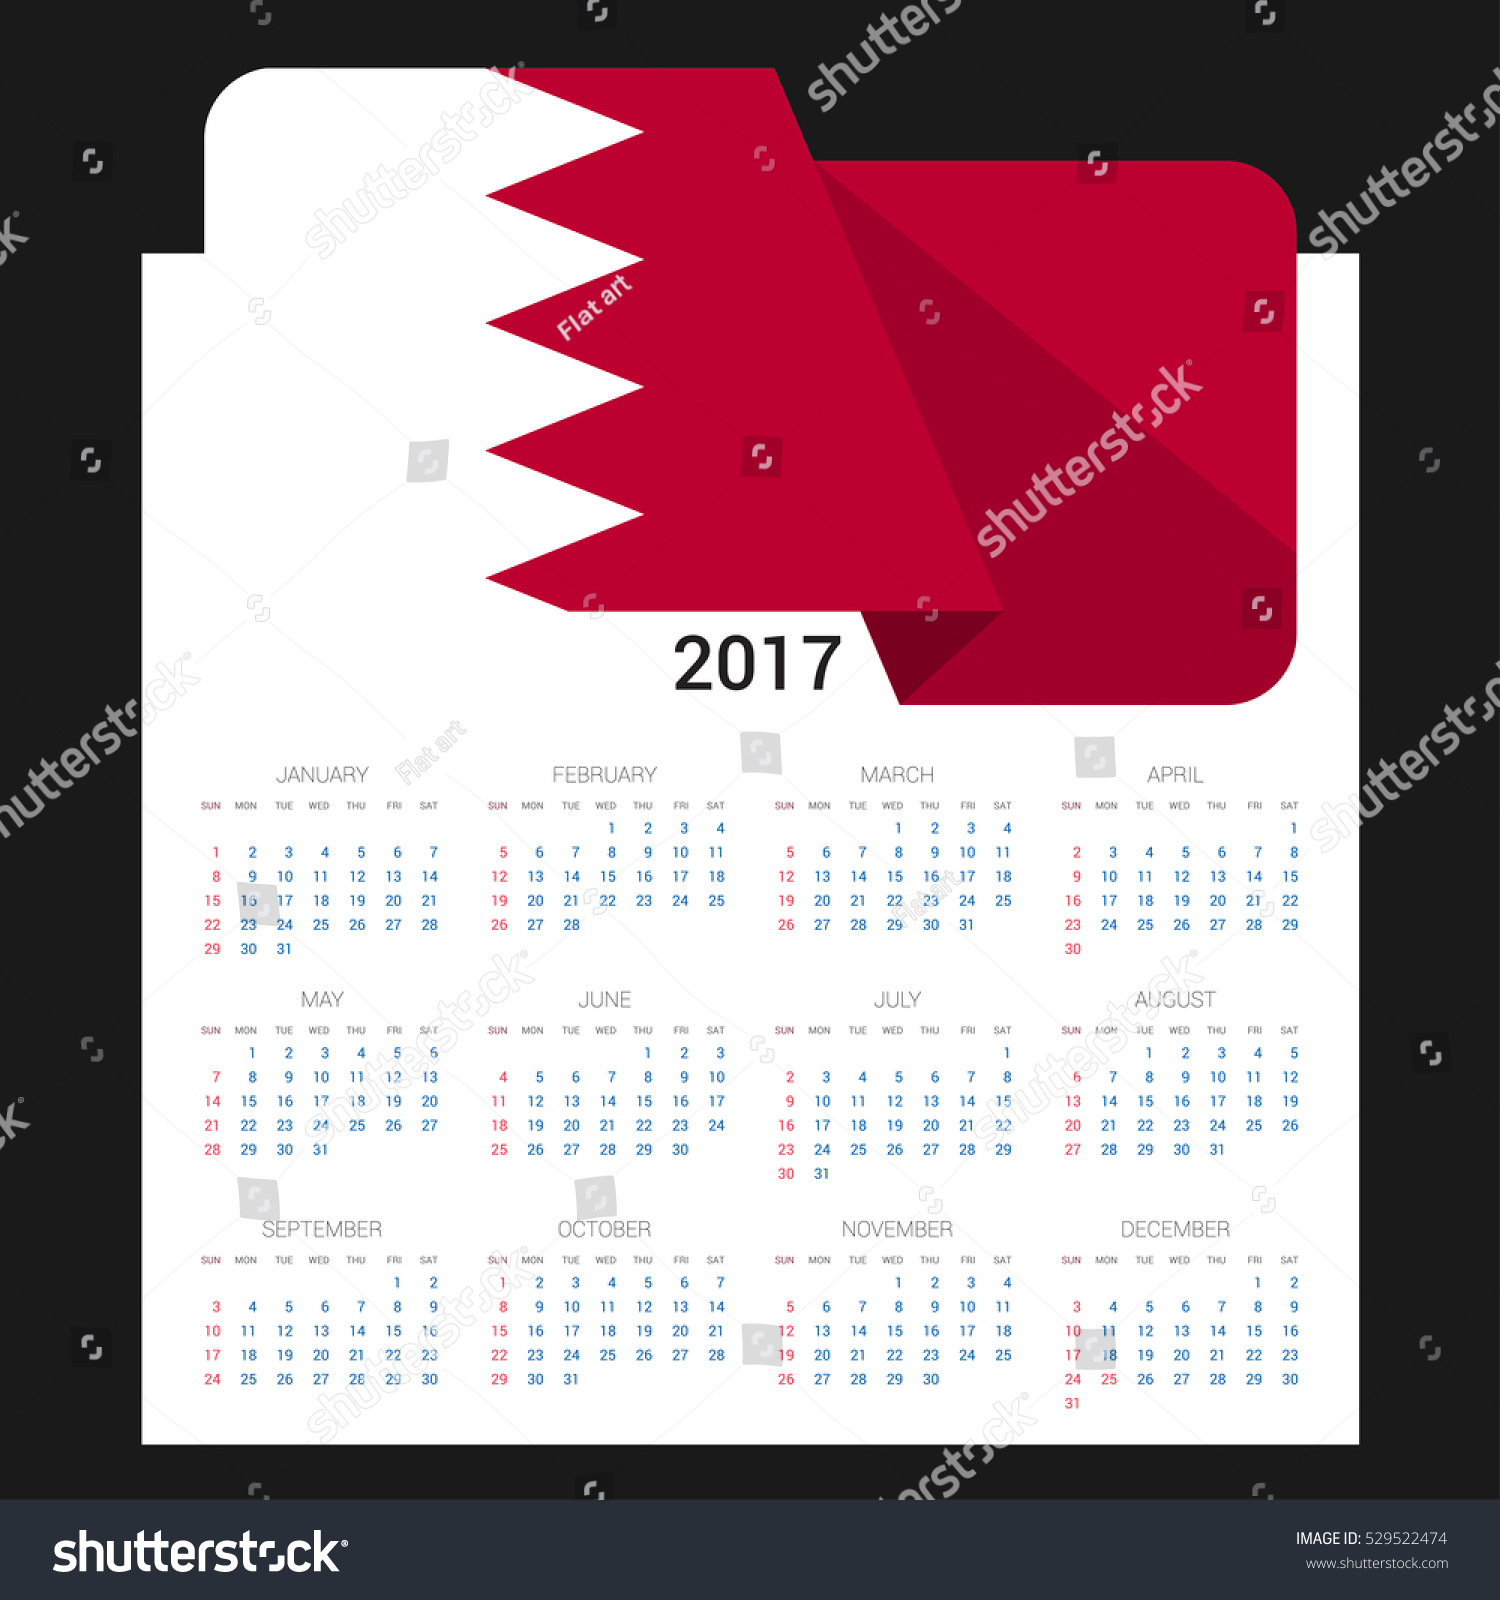 Calendar grid 2017 bahrain flag on stock vector 529522474 calendar grid 2017 bahrain flag on stock vector 529522474 shutterstock biocorpaavc Image collections